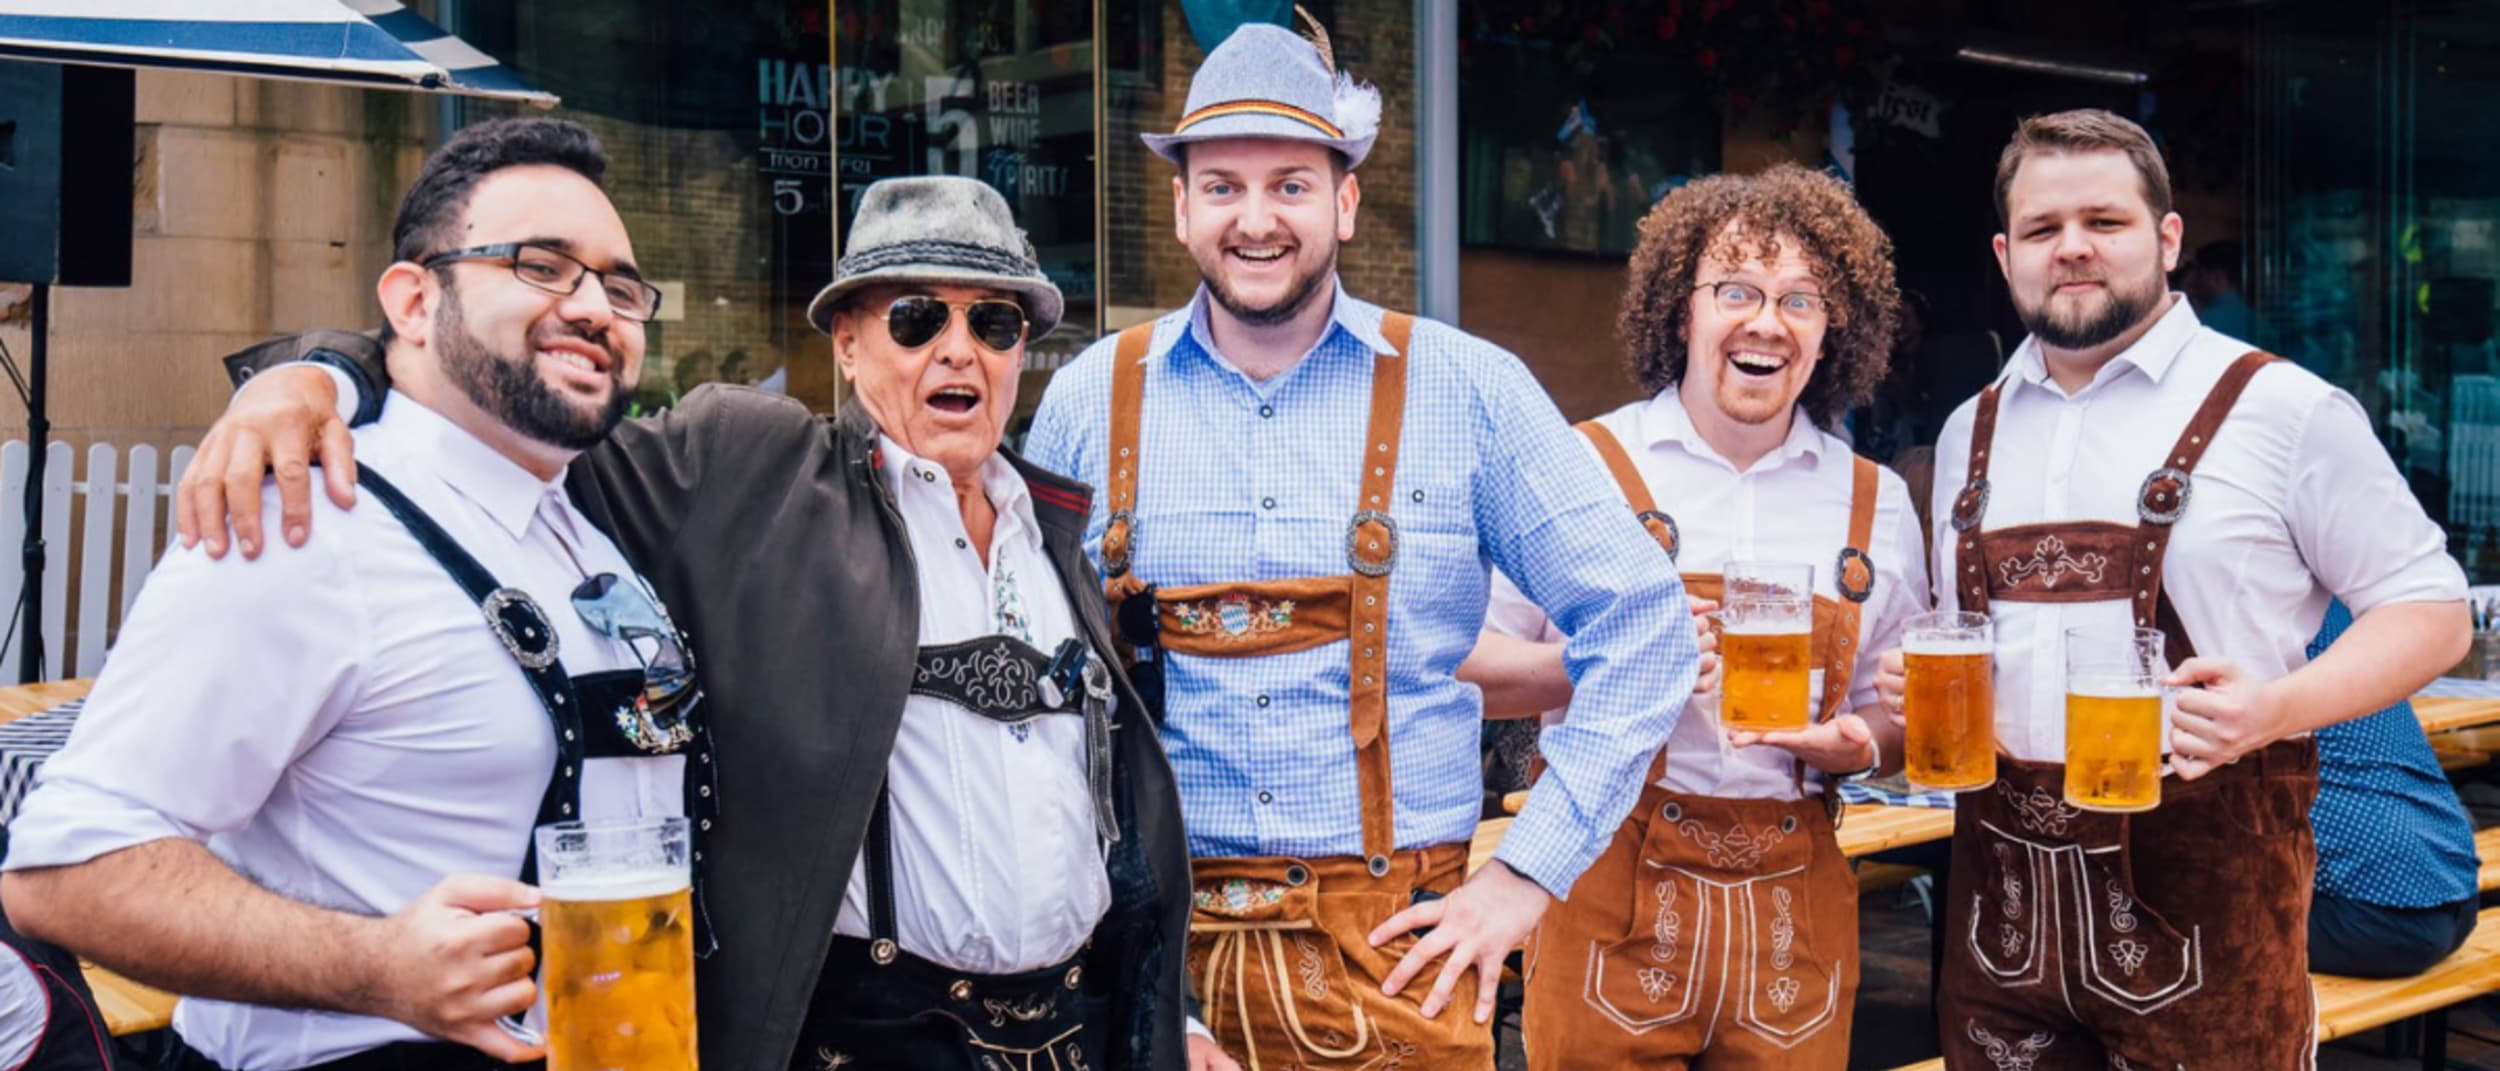 Win a trip to Oktoberfest 2020 in Germany with The Bavarian